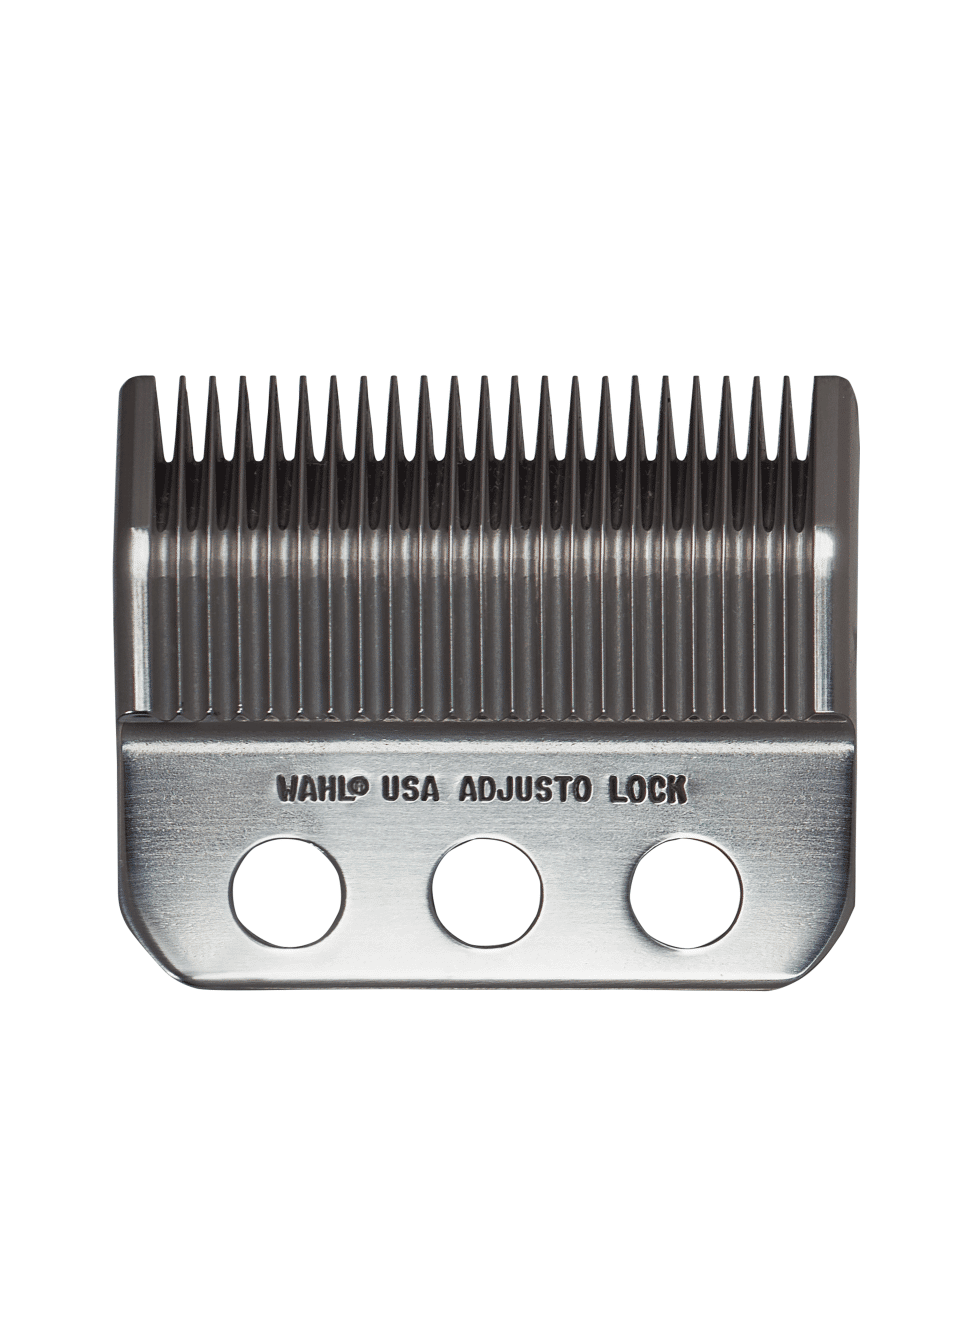 Wahl 3 Hole Adjusto Lock Clipper Blade 1005 Barber Supplies